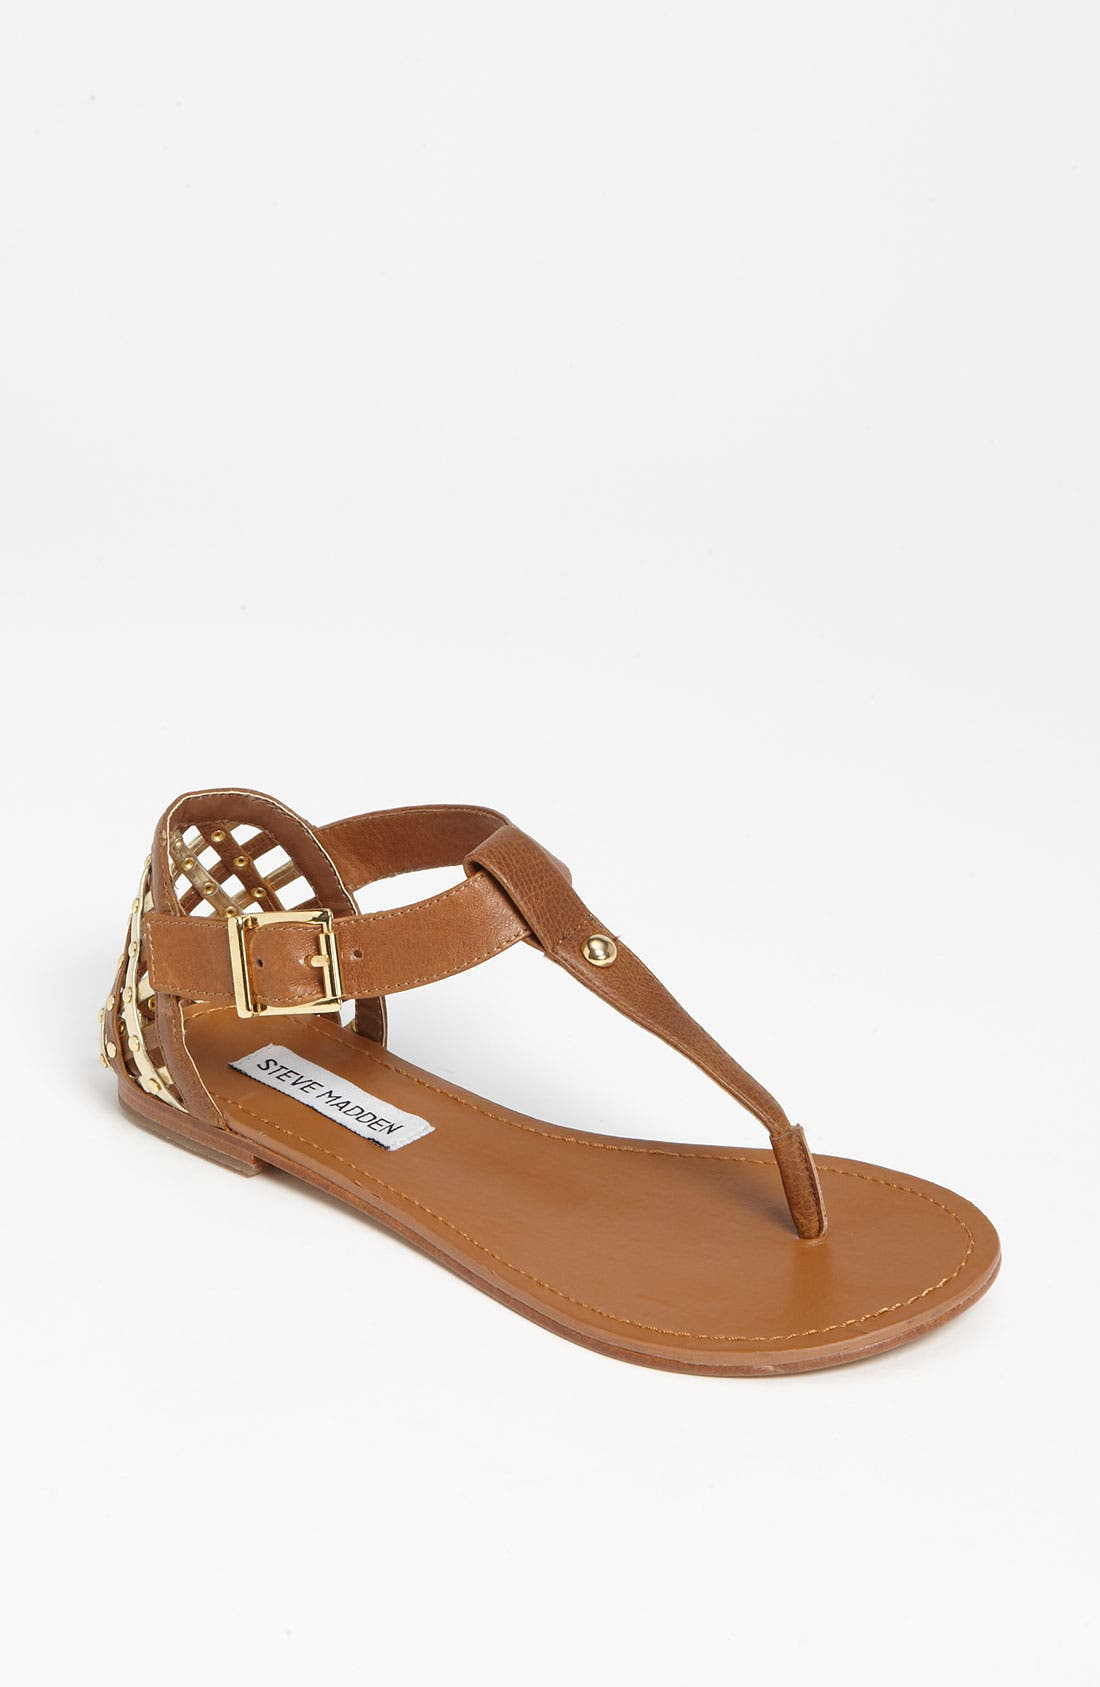 Alternate Image 1 Selected - Steve Madden 'Sutttle' Sandal